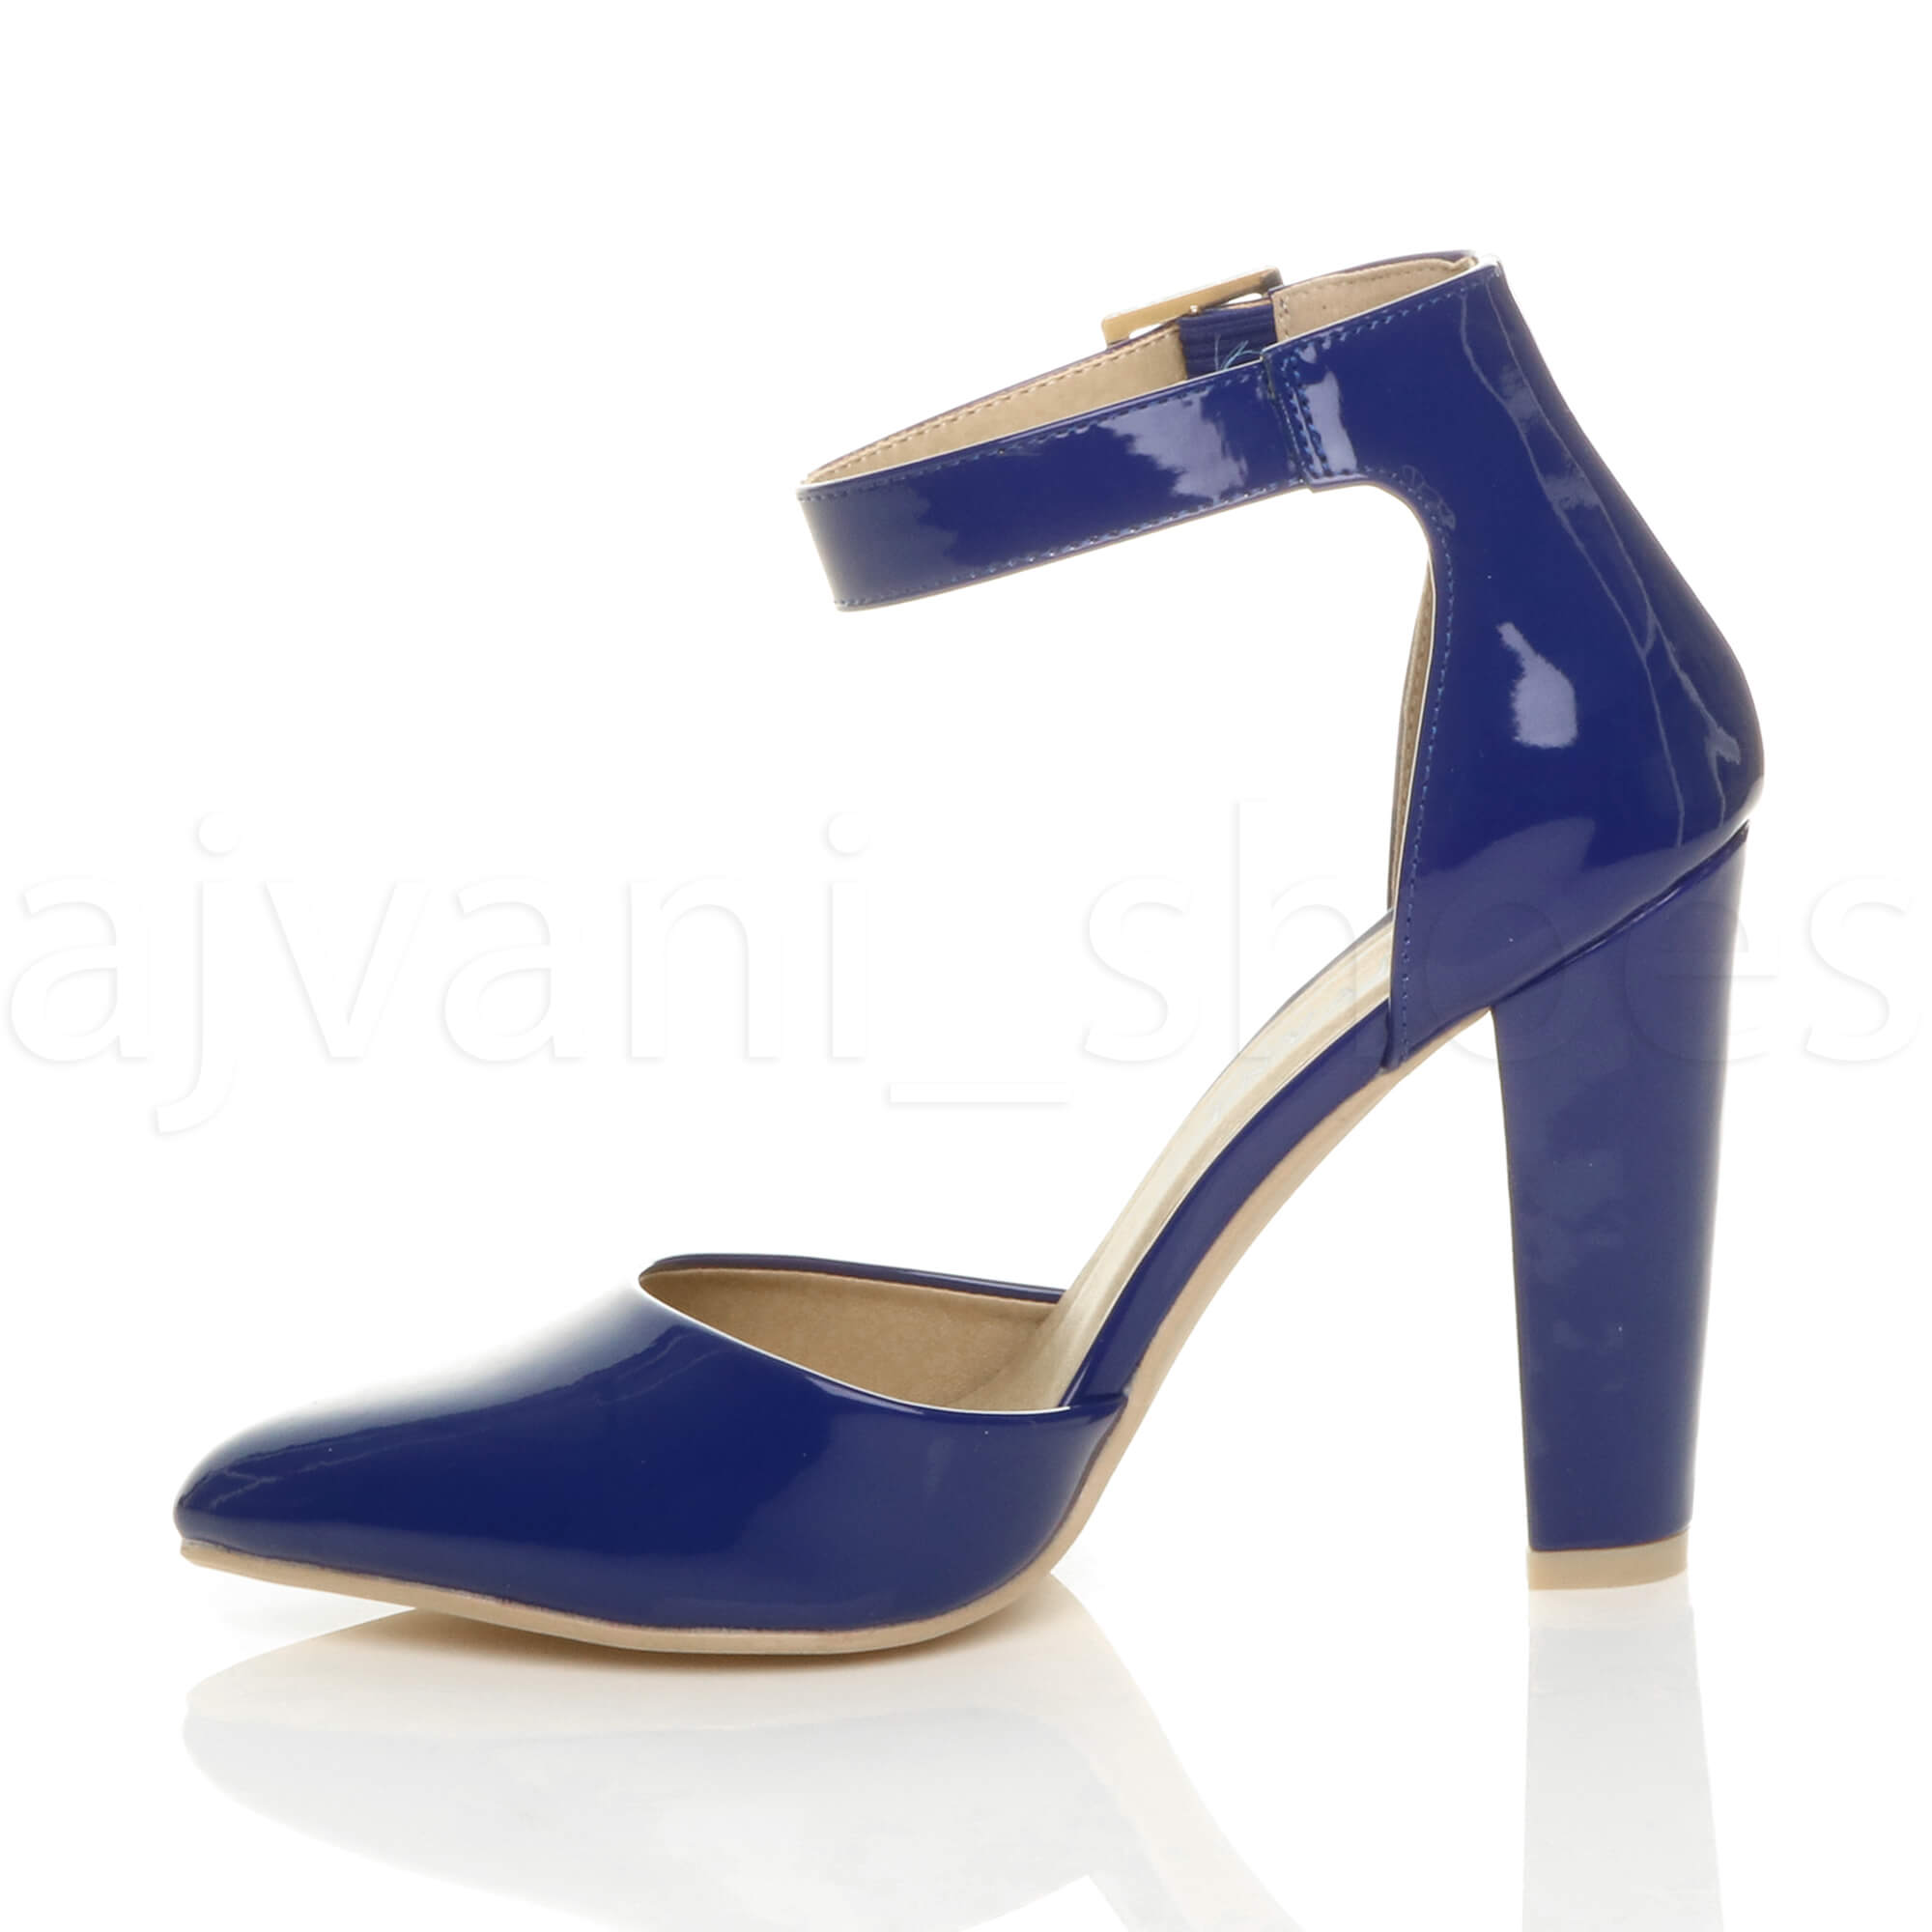 WOMENS-LADIES-HIGH-BLOCK-HEEL-ANKLE-STRAP-BUCKLE-POINTED-COURT-SHOES-SIZE thumbnail 32